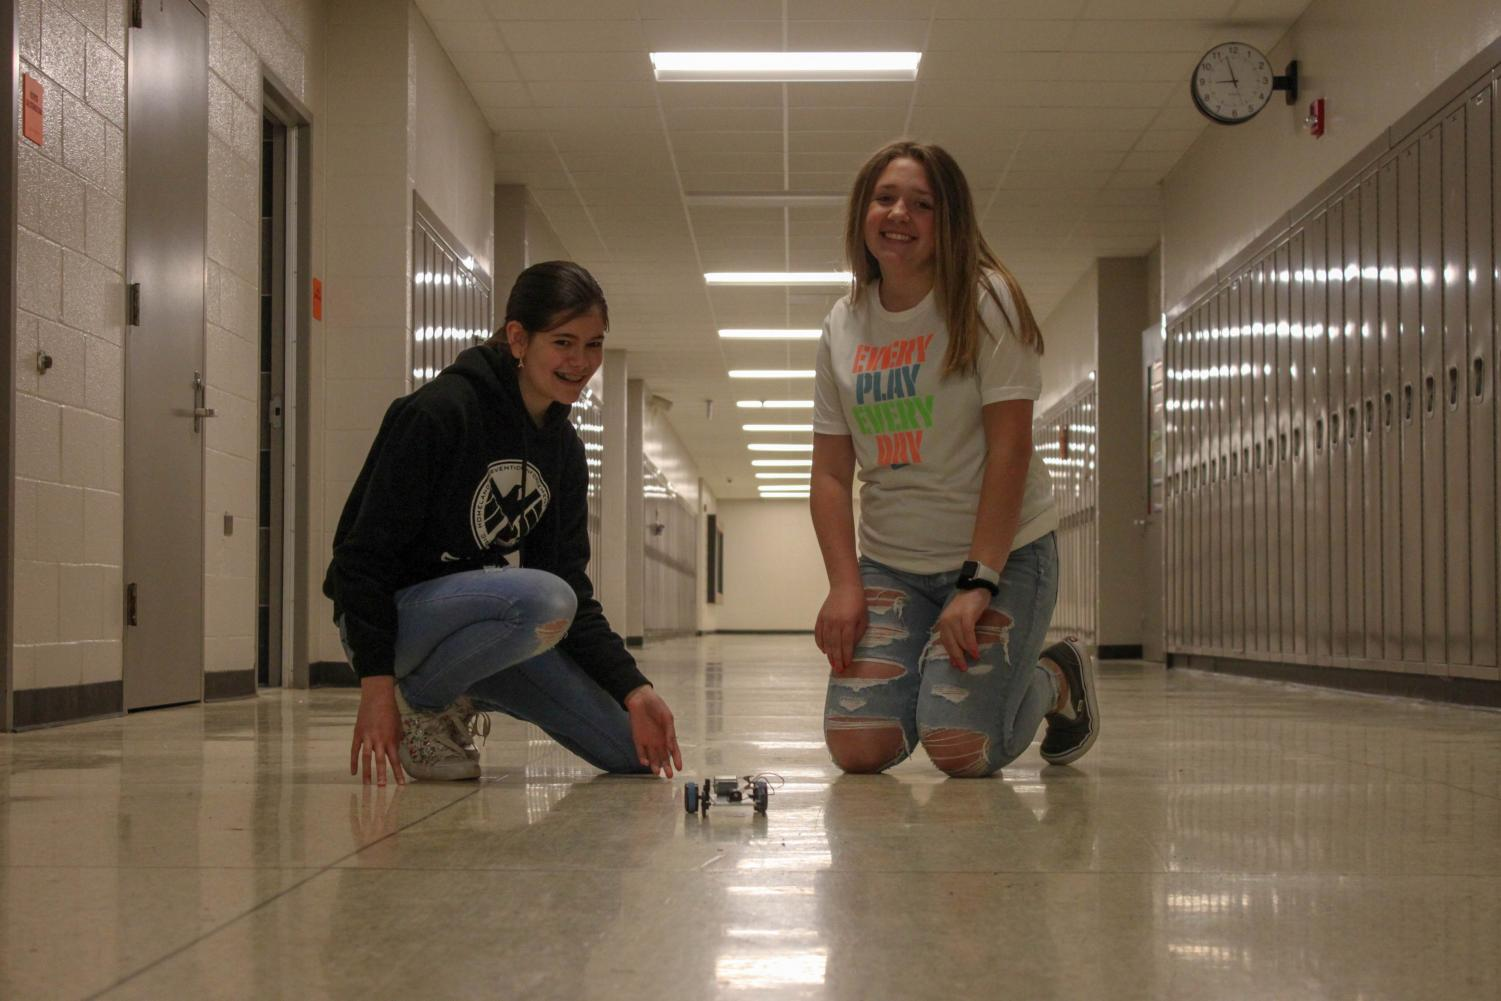 Happiness. While working on a robotics project, eighth graders Emily VanPelt and Kenzie Dalton express happiness when told they will get out of school a day early.